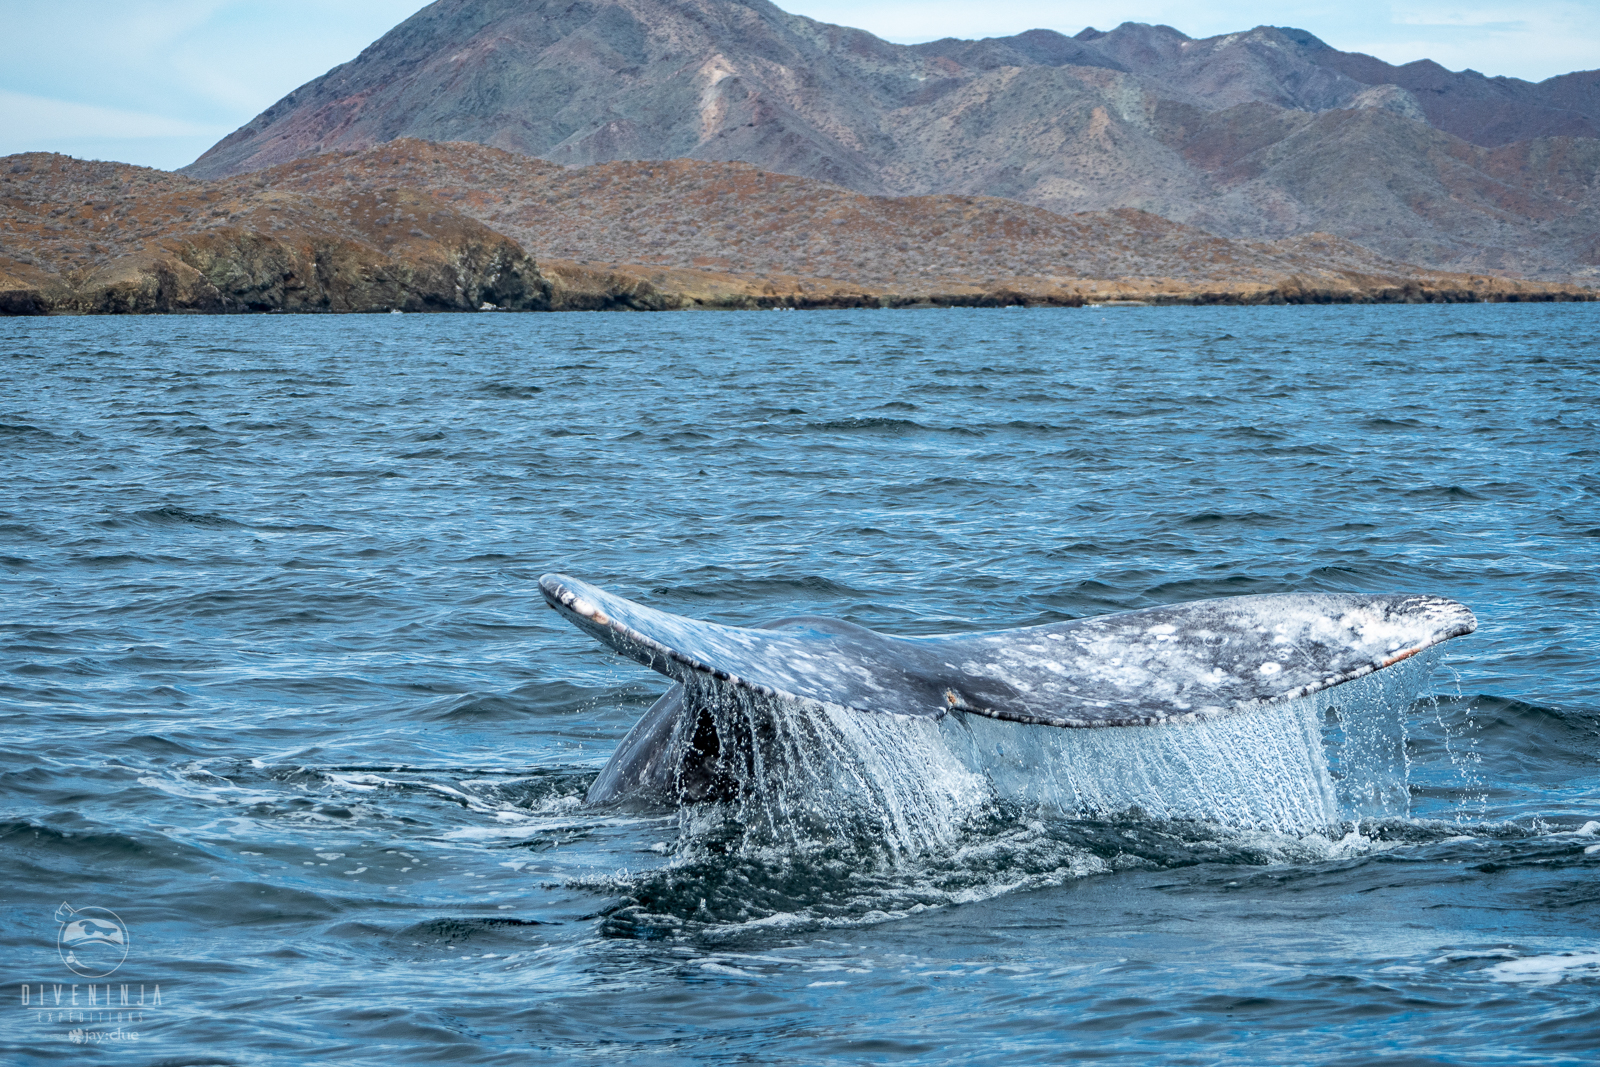 Whale watching tours in Los Cabos, Baja California Sur, Mexico